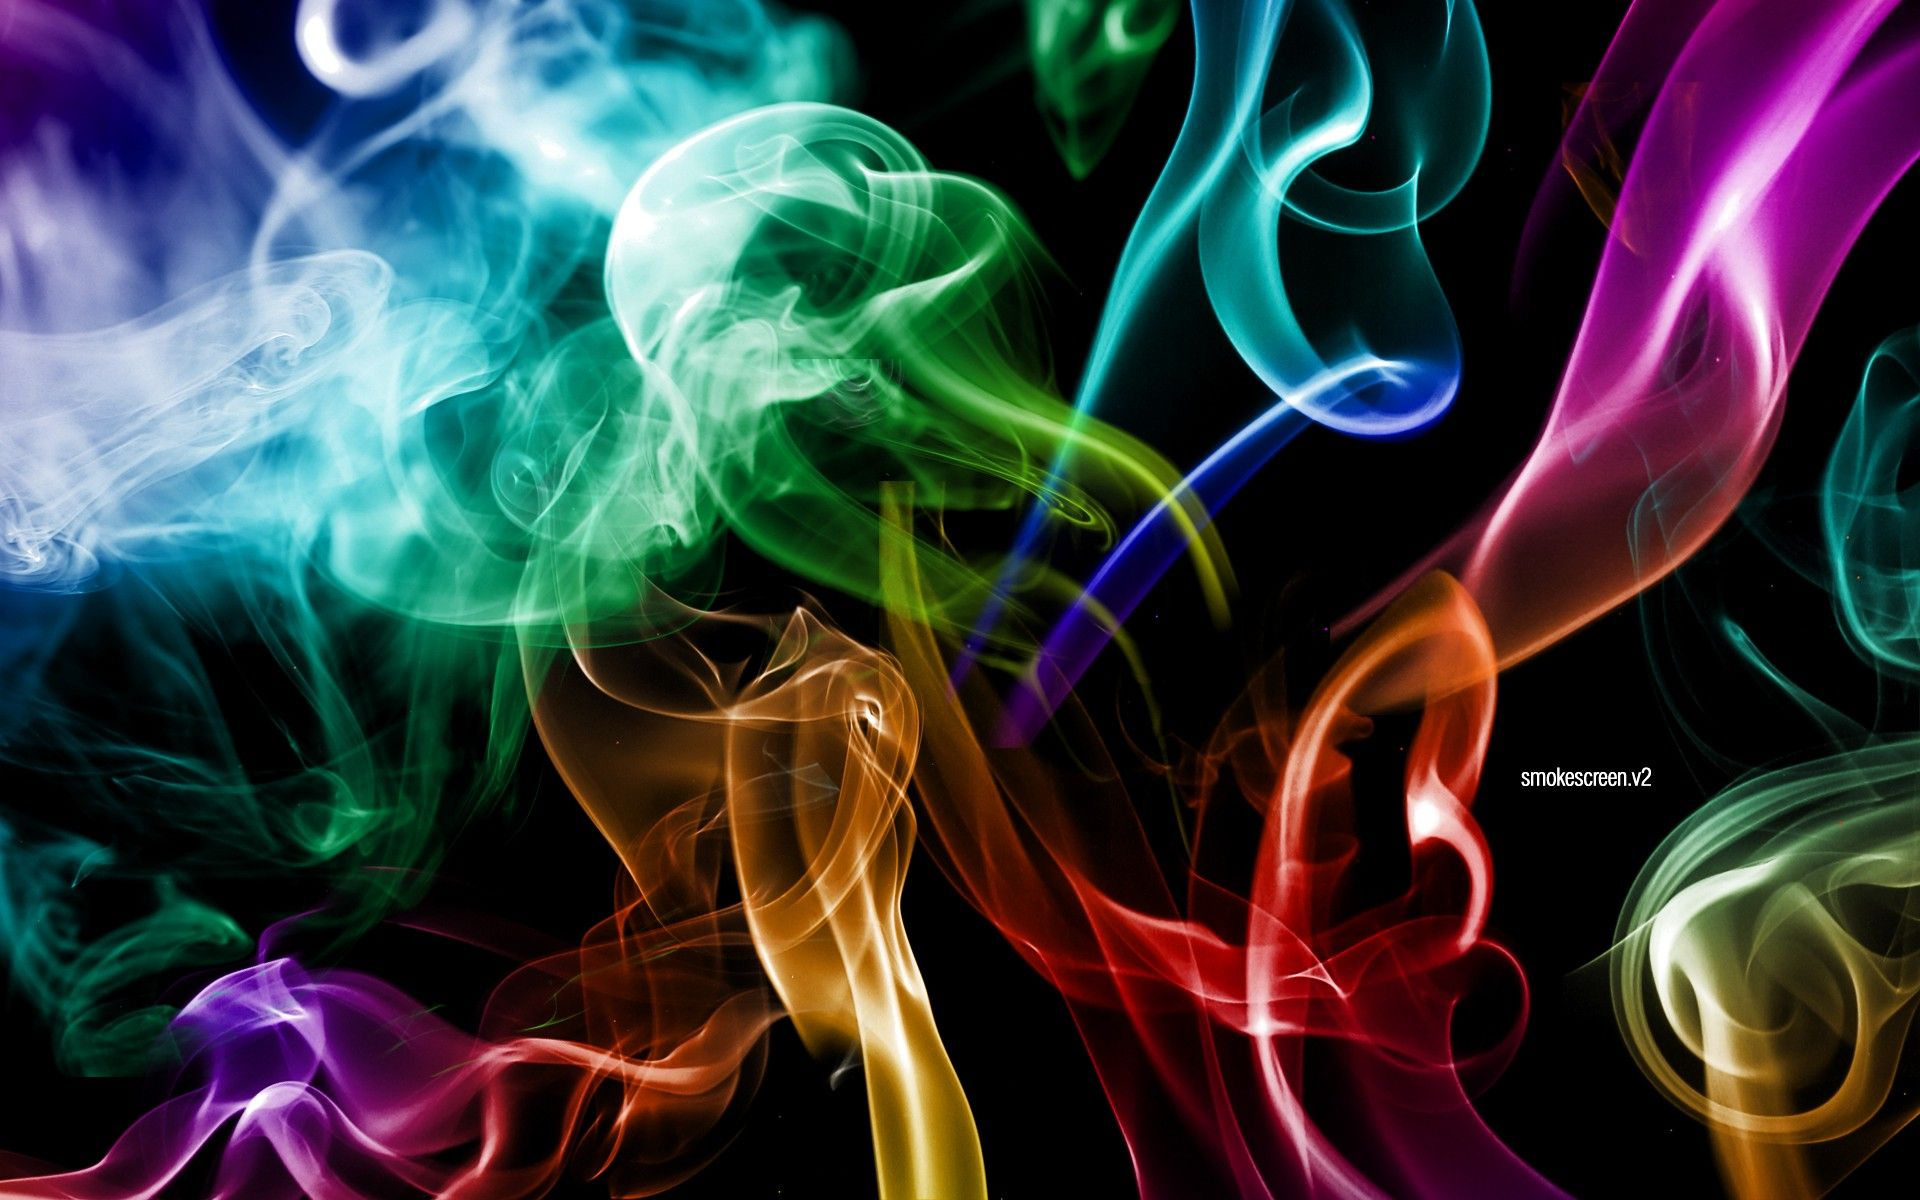 Hd wallpaper colour - Hd Wallpaper Color Smoke Colors